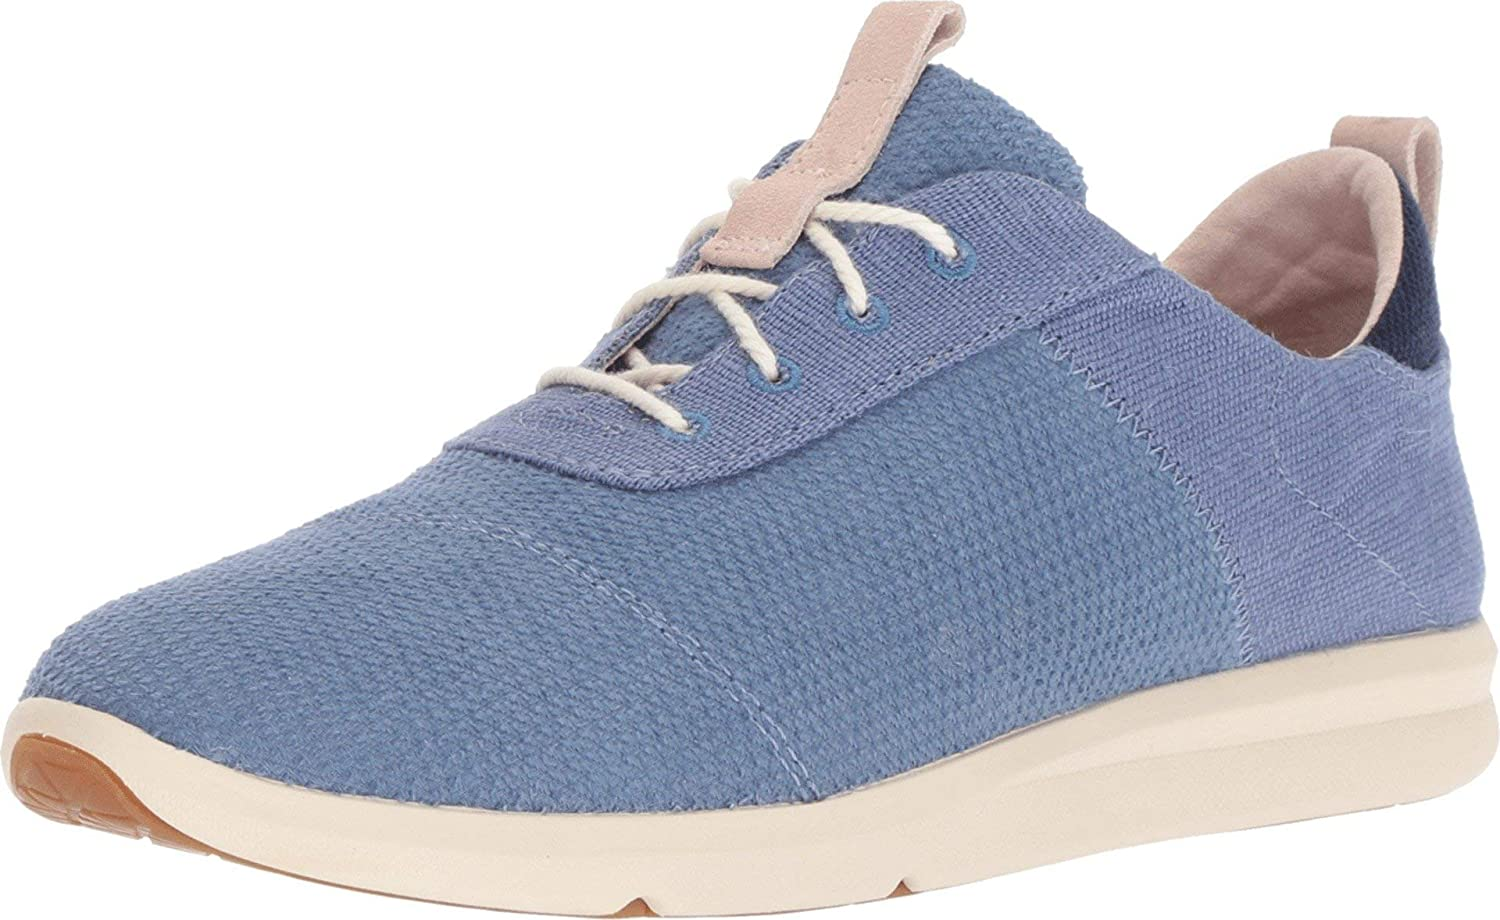 TOMS Womens Cabrillo Casual Sneakers